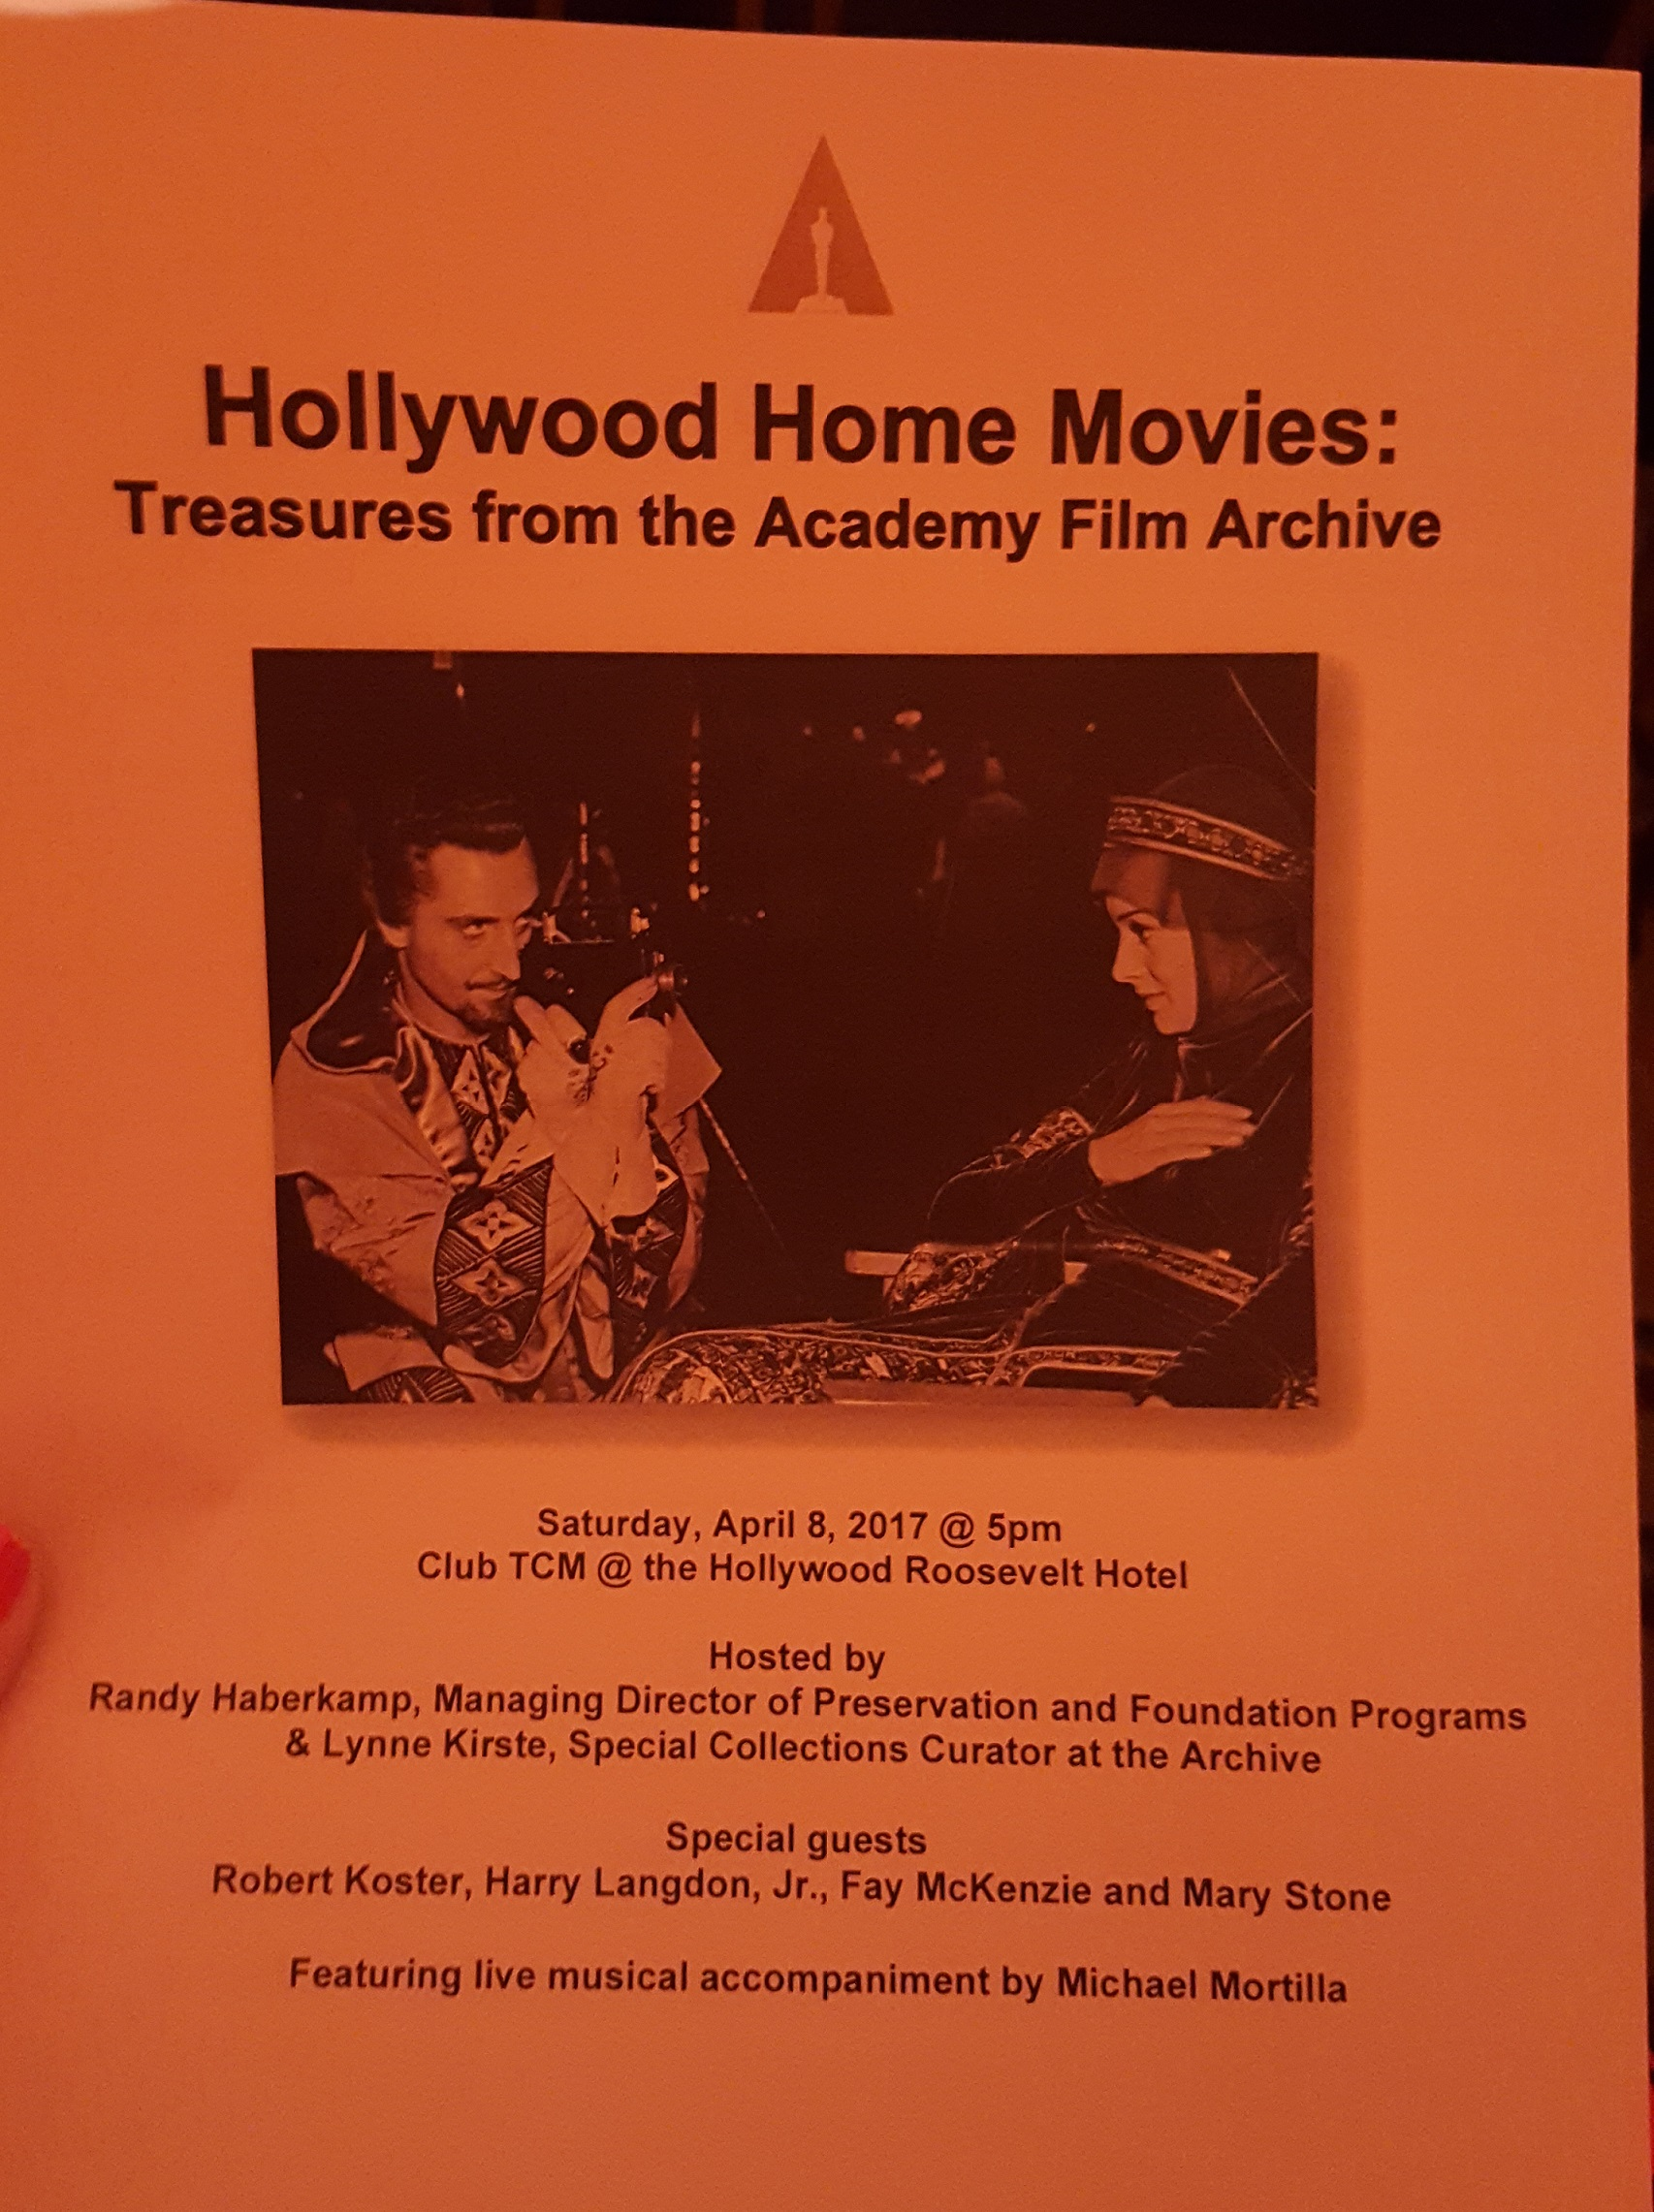 TCMFF 2017 Hollywood Home Movies